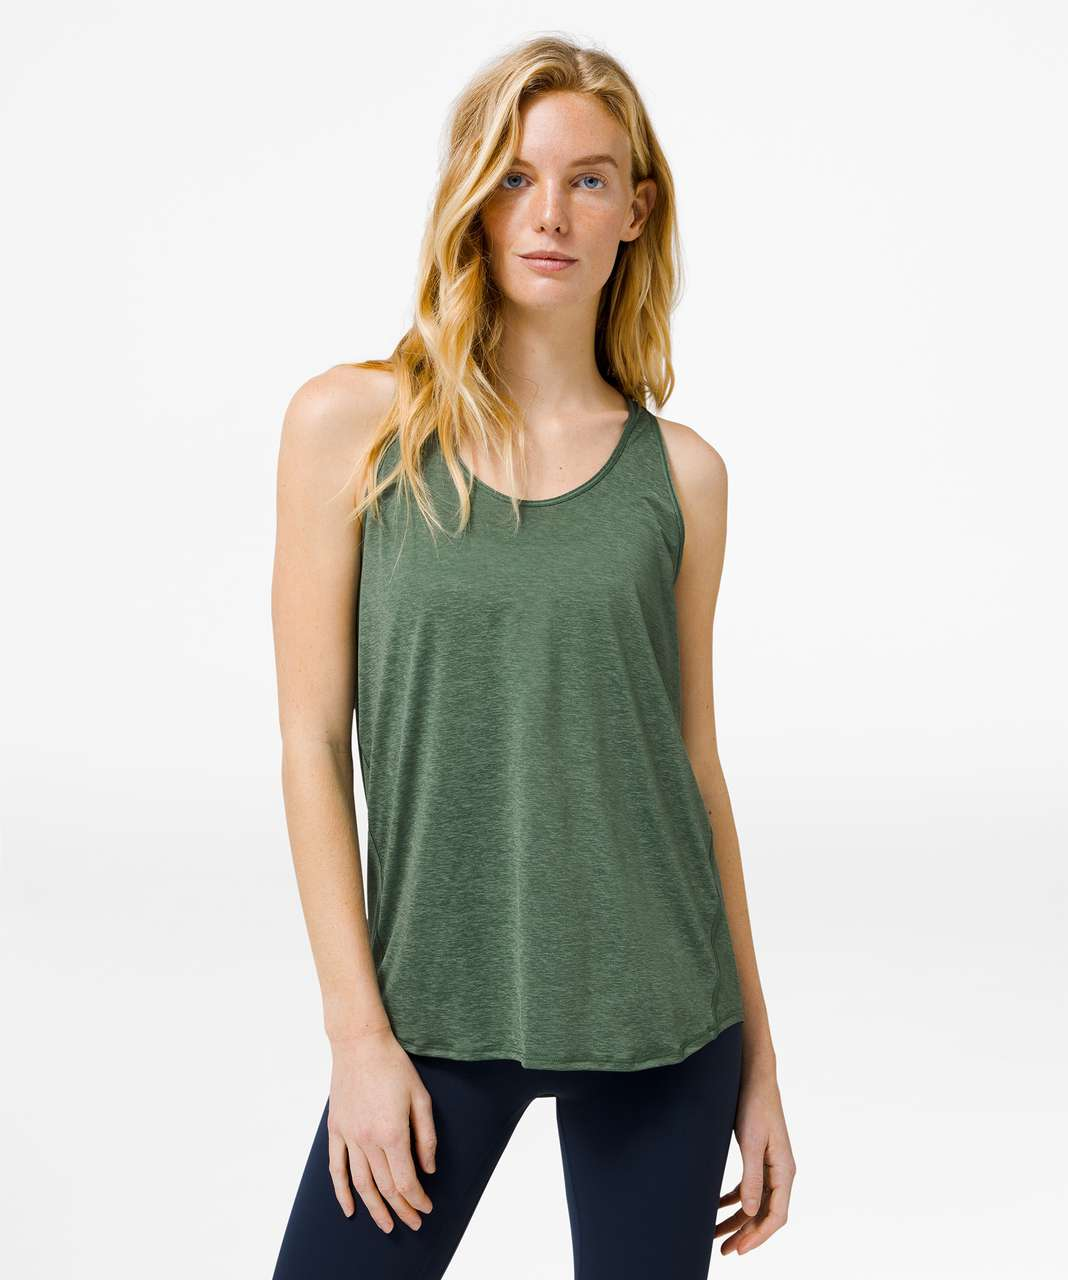 Lululemon Essential Tank *Pleated - Algae Green